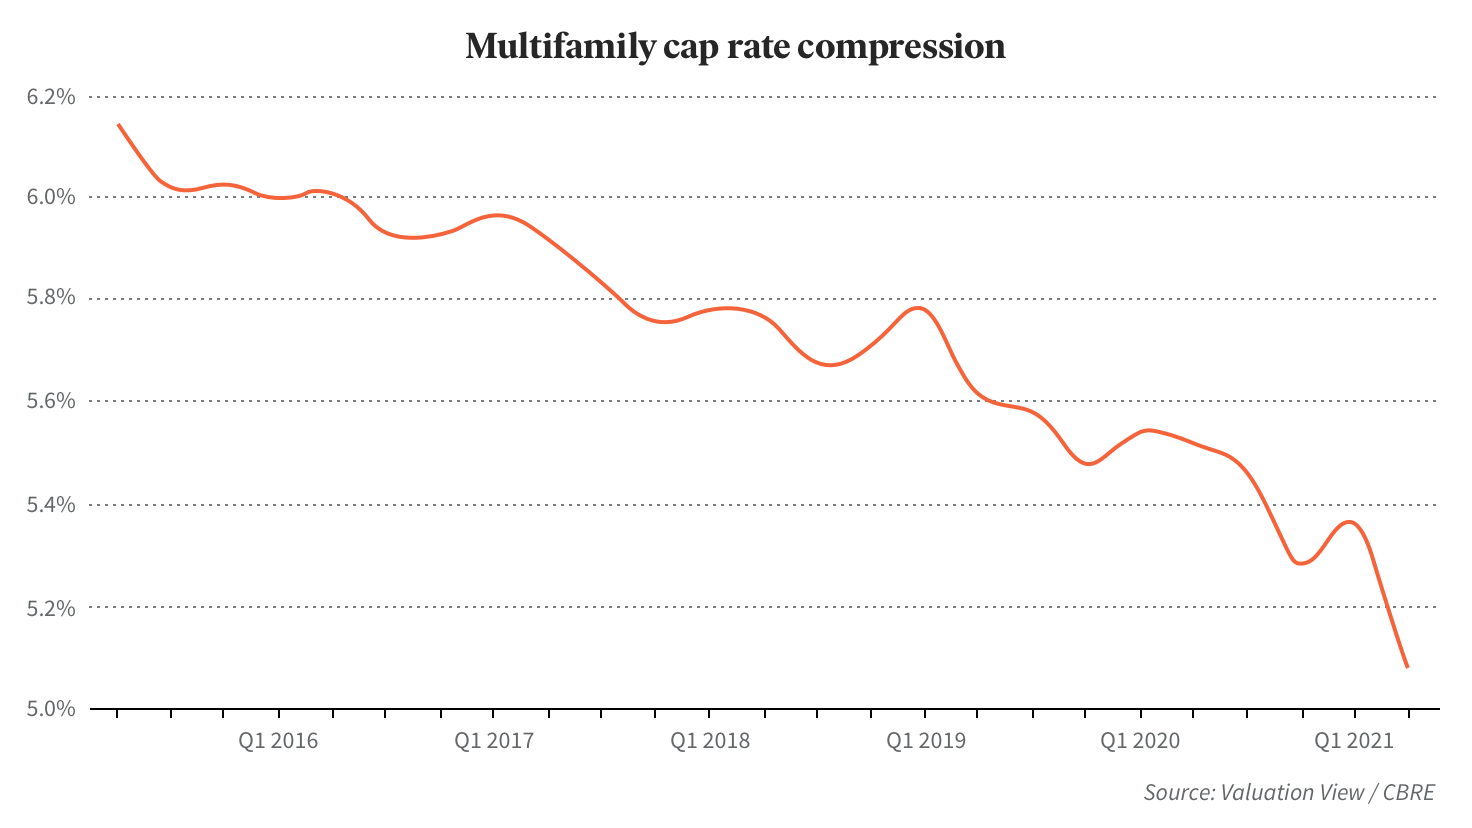 Historical cap rate compression since 2015 through 3Q 2021